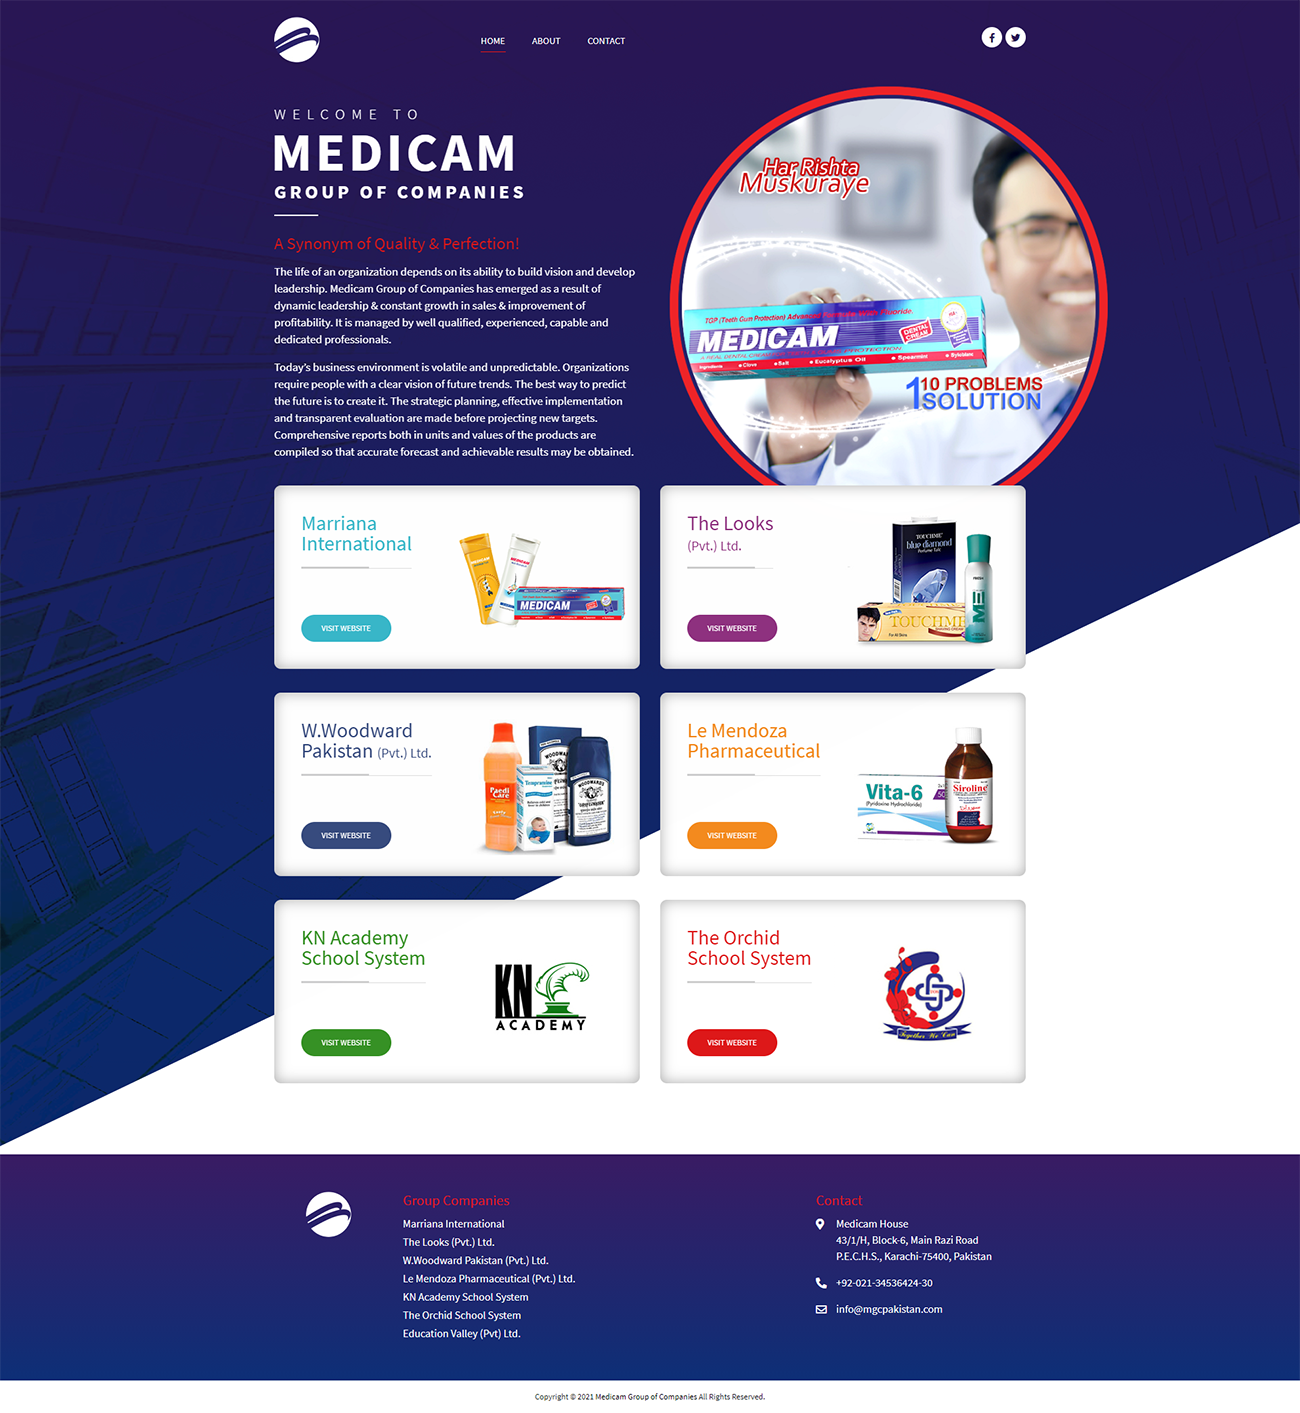 Medicam Group of Companies